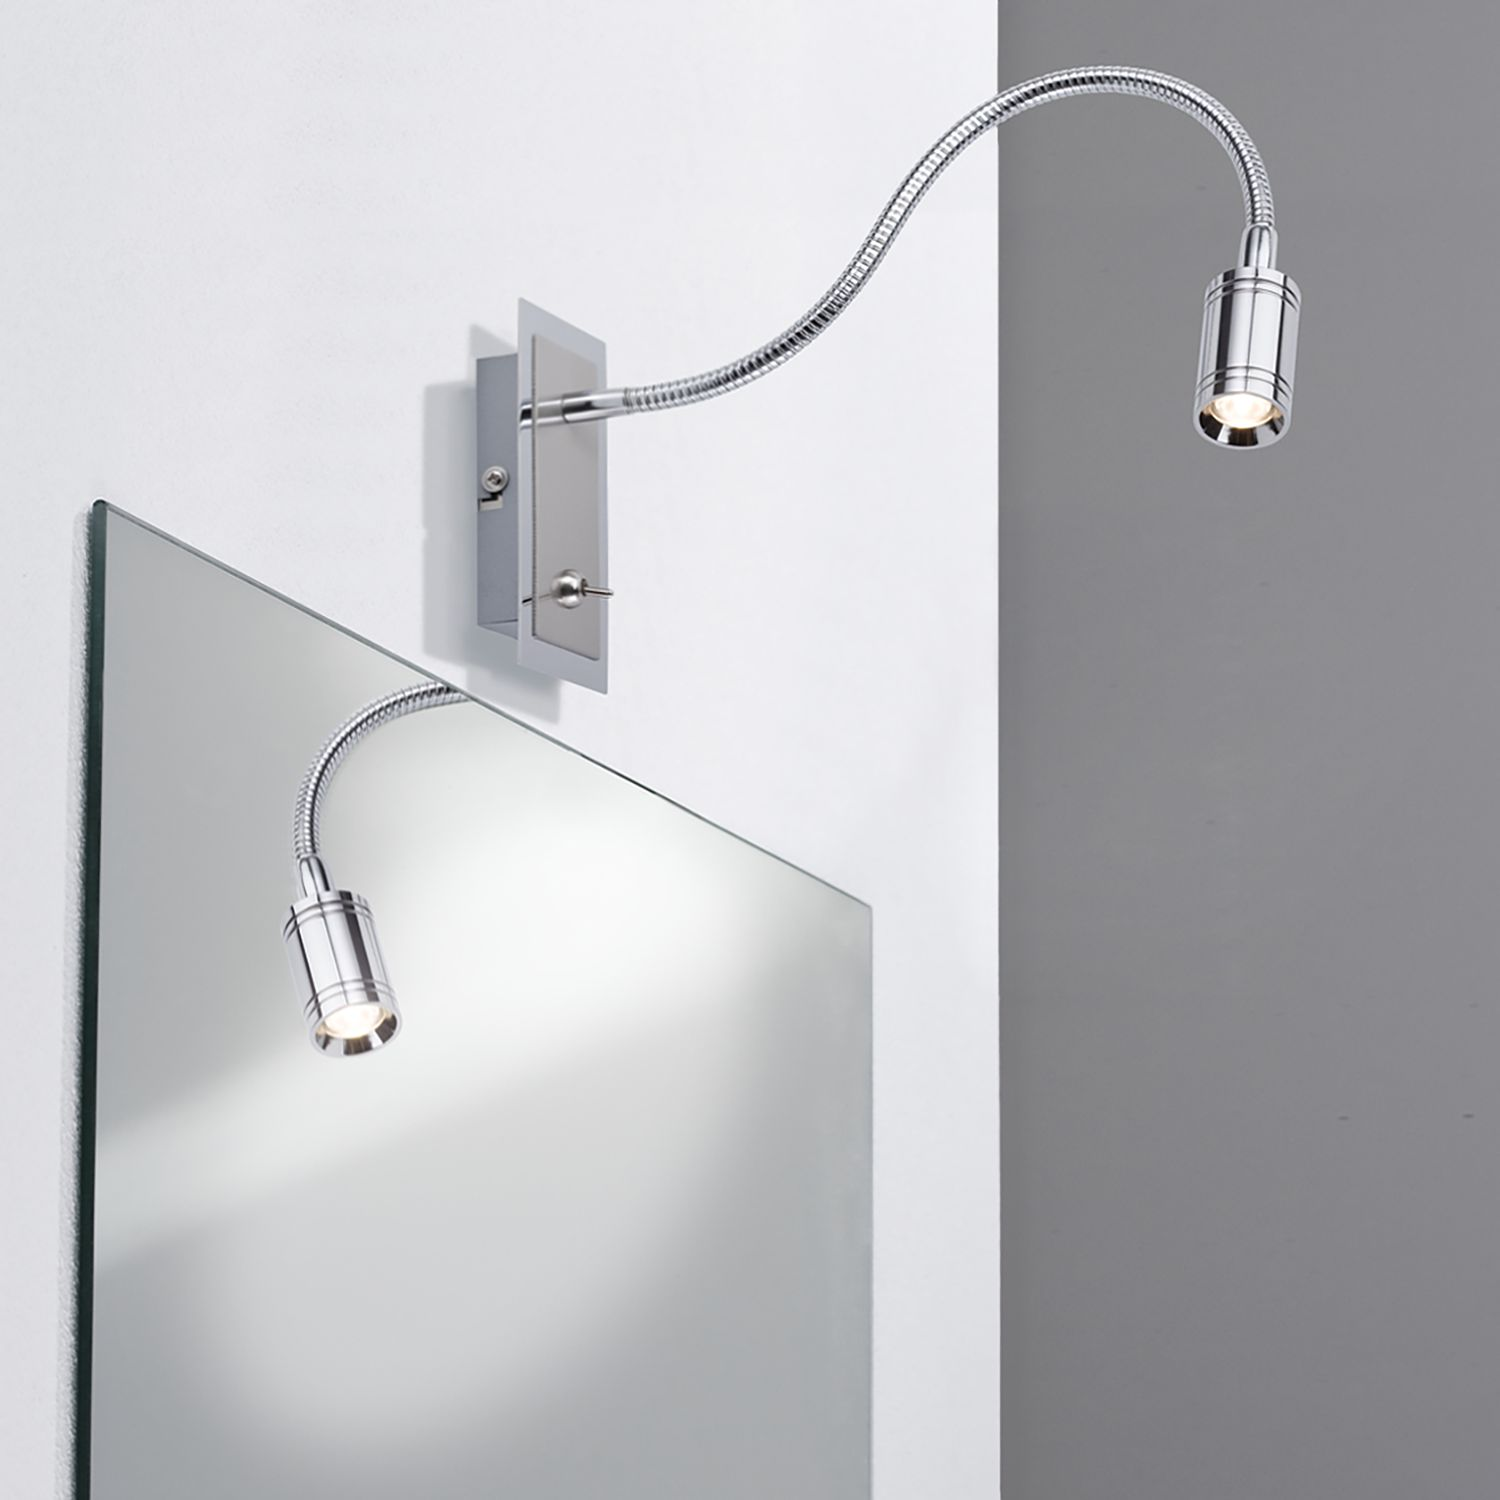 home24 LED-Wandleuchte Zylindro